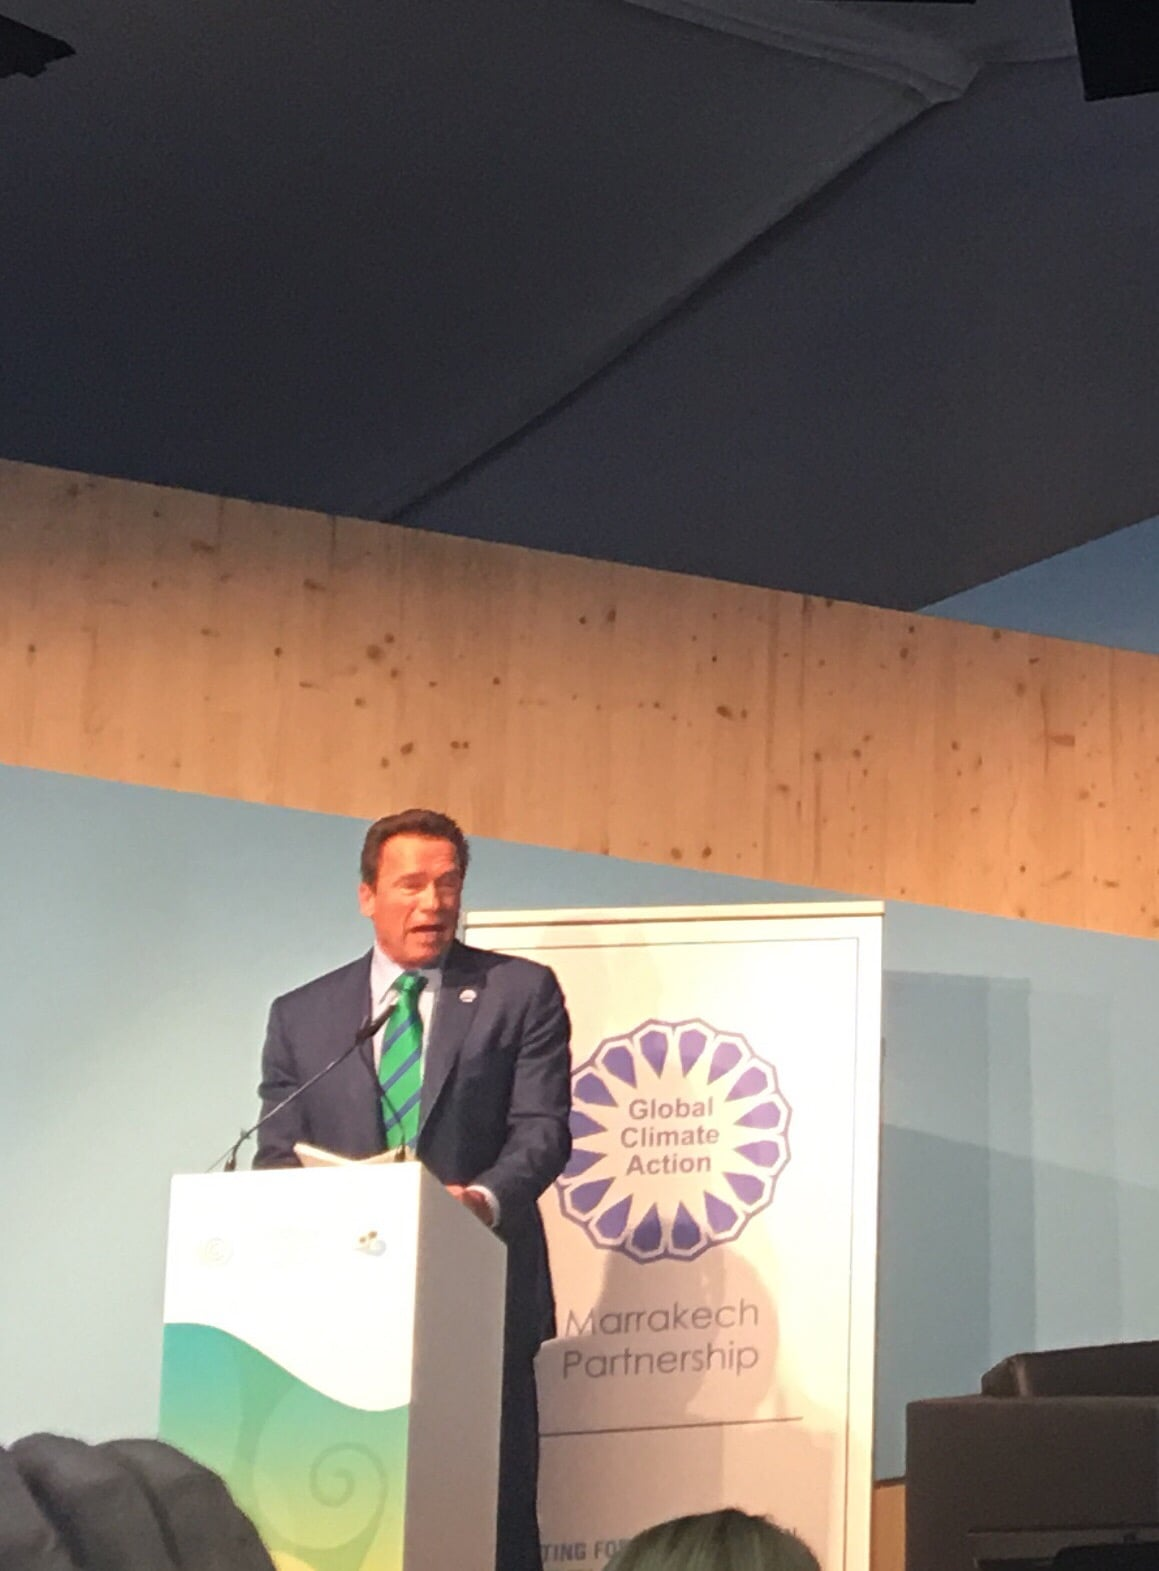 Arnold Schwarzenegger at WHO event